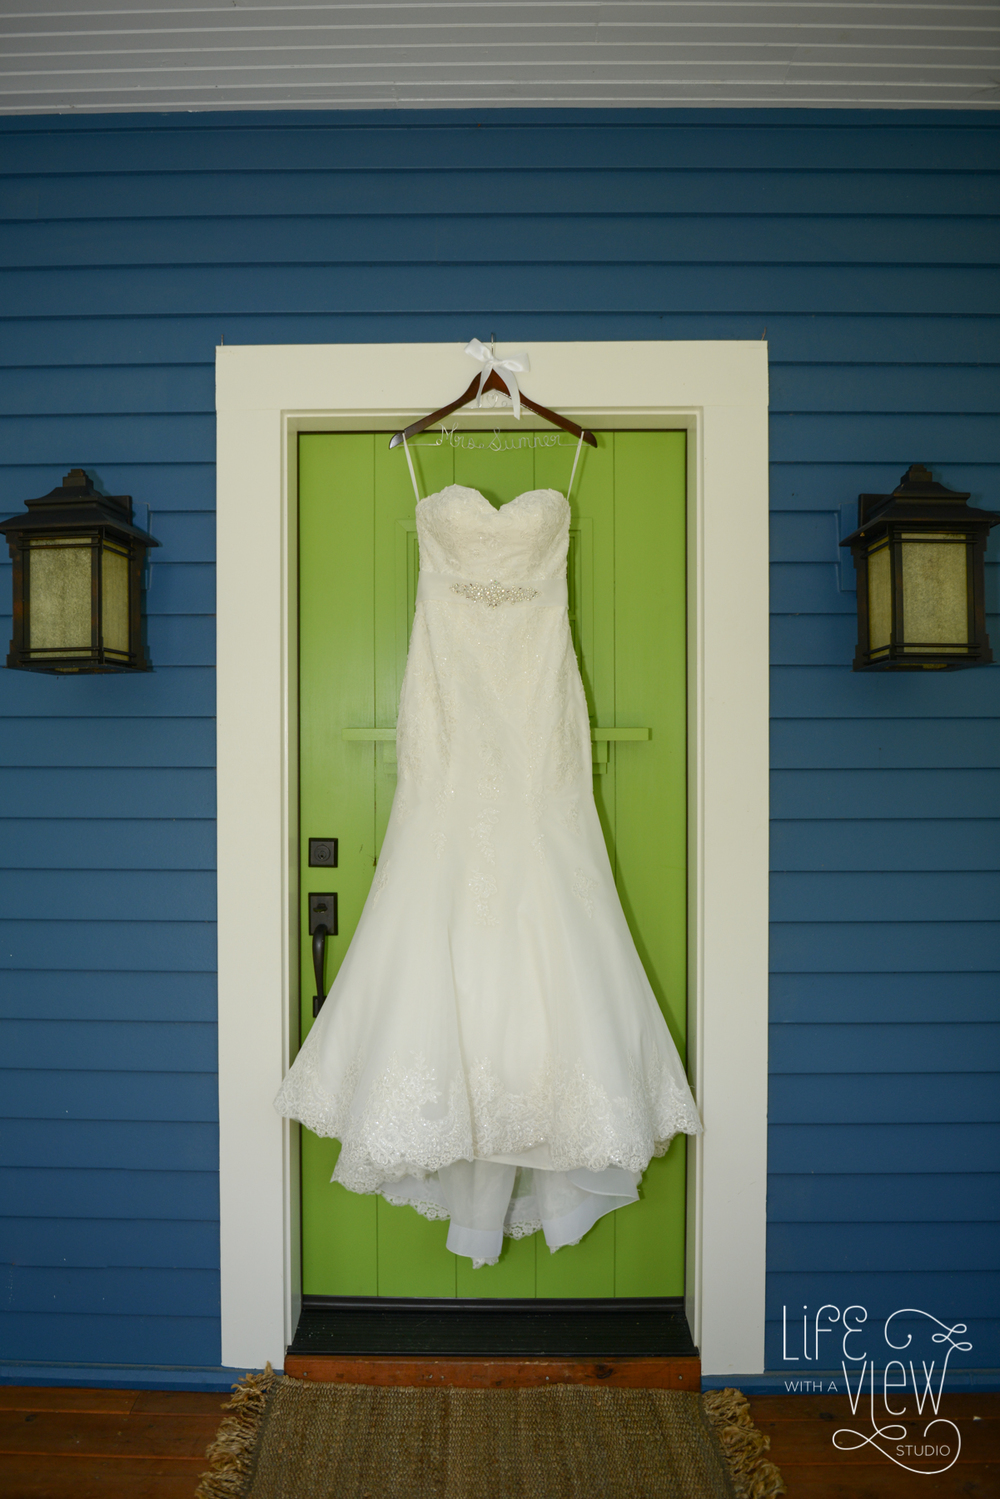 Sumner-Wedding-8.jpg